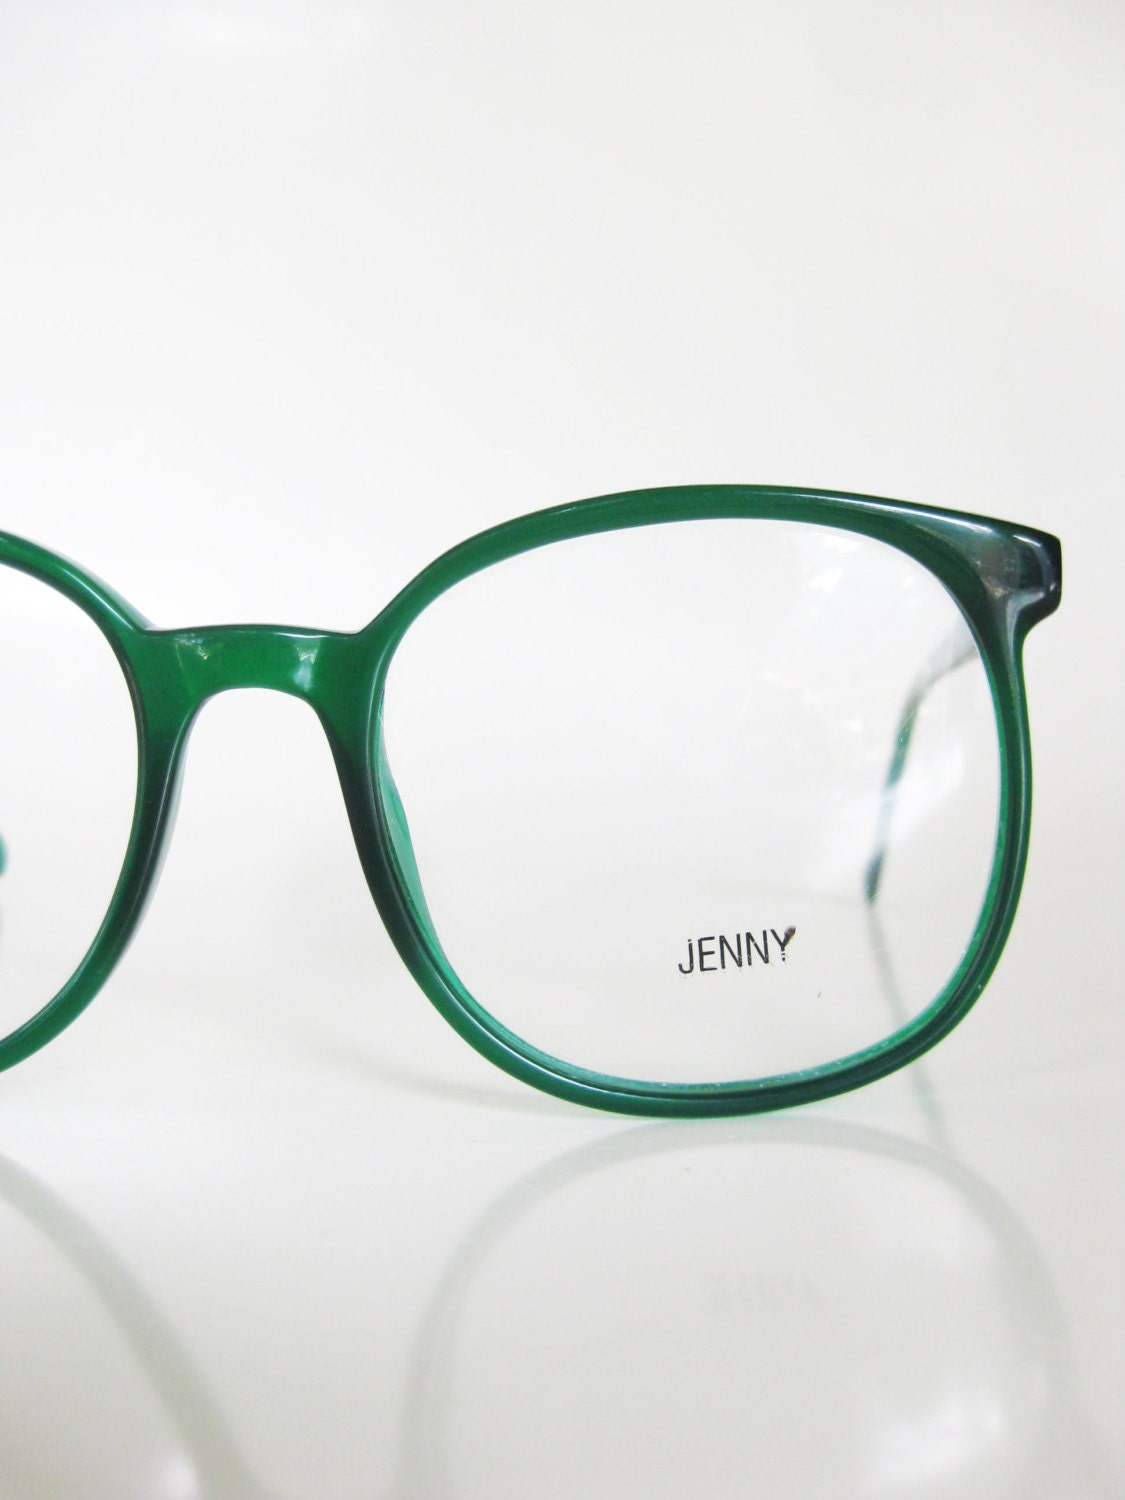 1970s Round Emerald Green Eyeglasses Sunglasses by ...